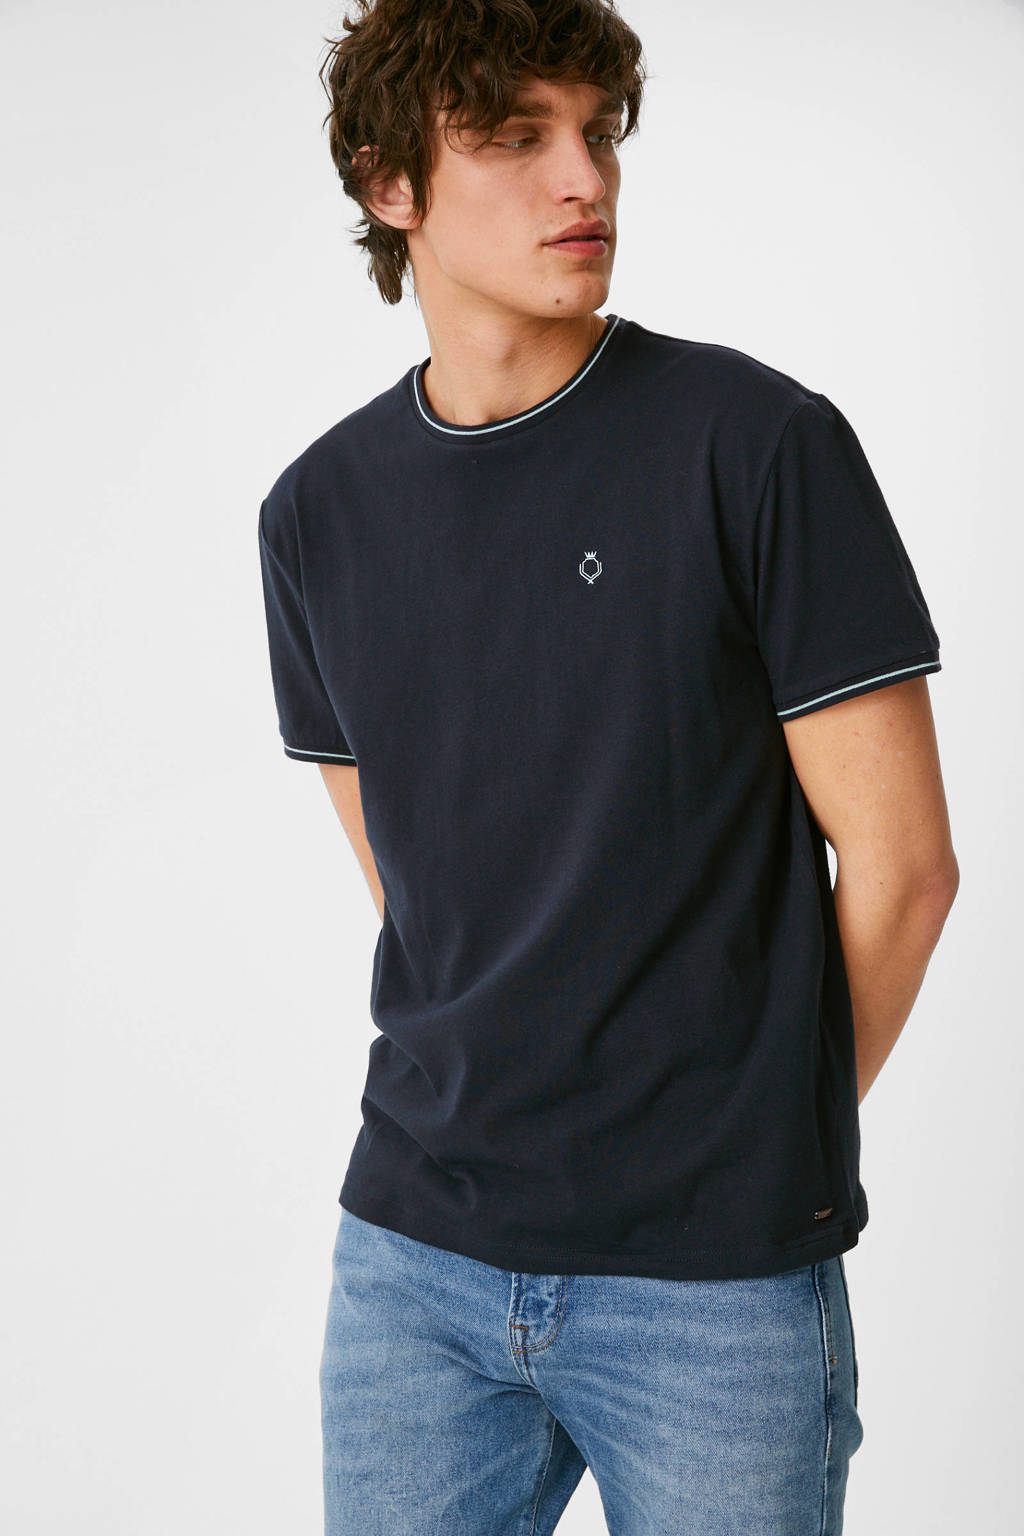 C&A T-shirt met contrastbies donkerblauw, Donkerblauw